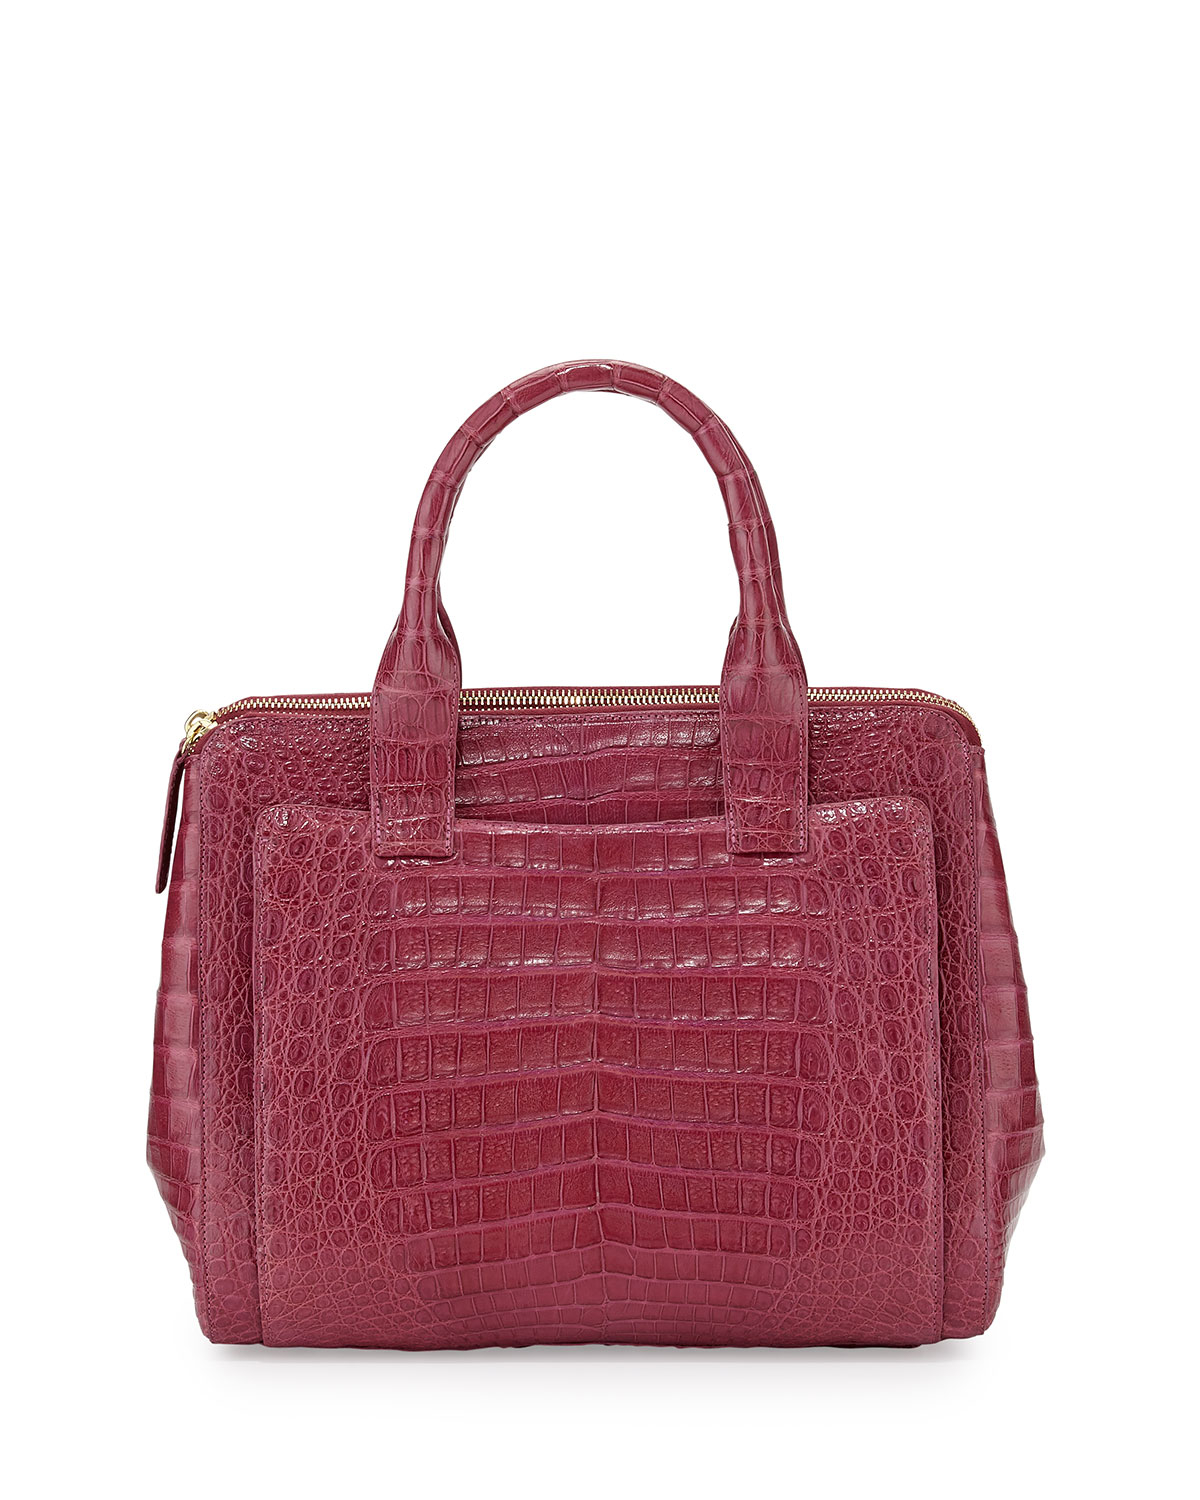 Nancy gonzalez medium crocodile zip tote bag raspberry in for Nancy gonzalez crocodile tote